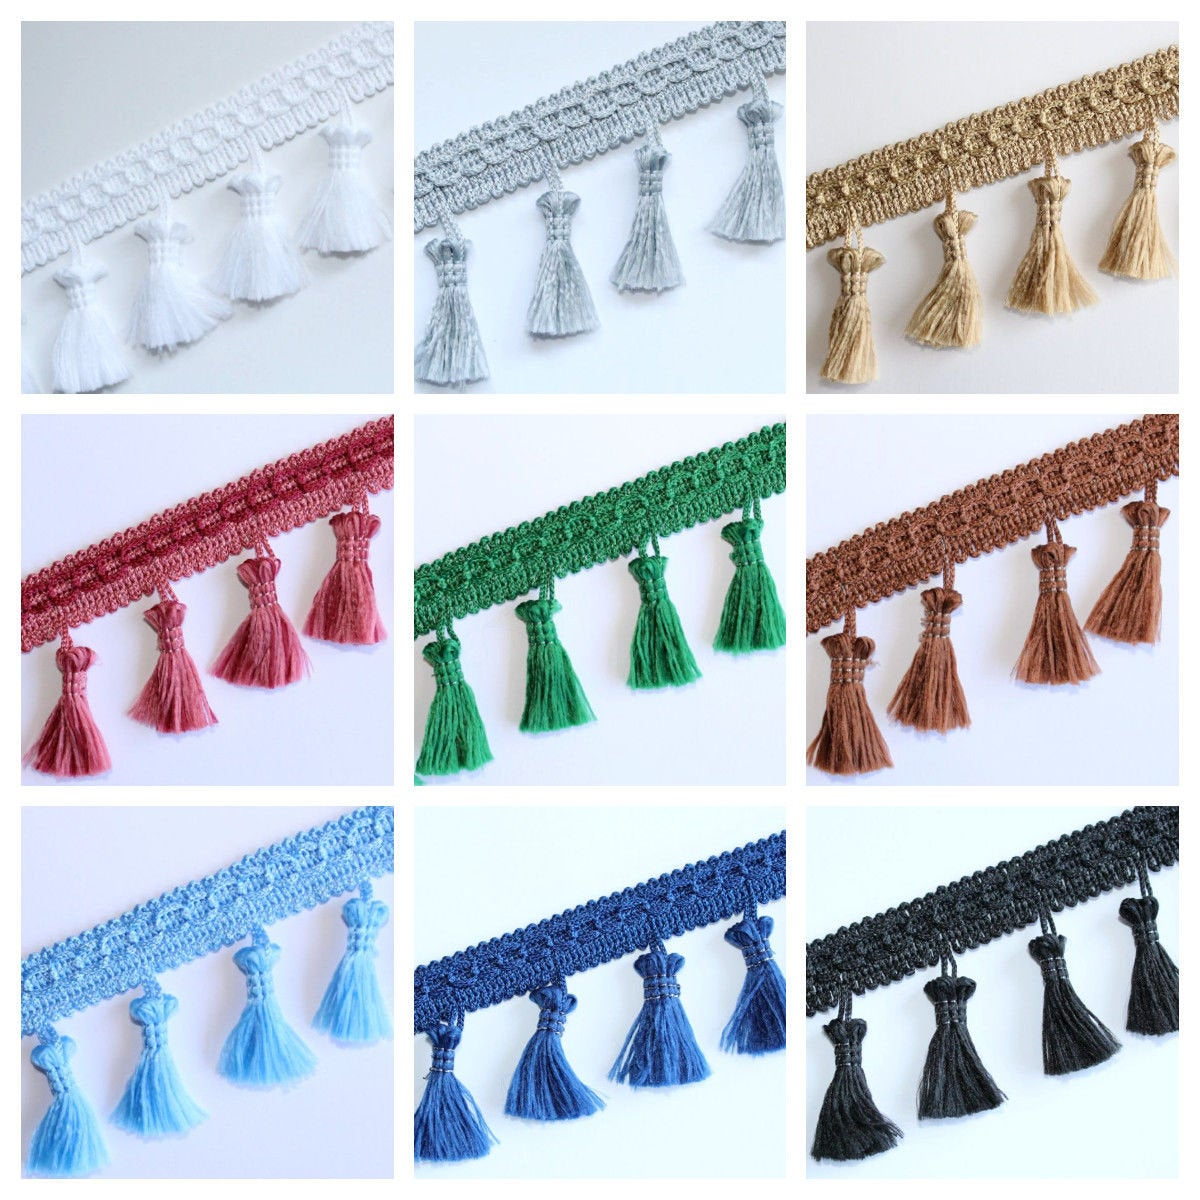 Fringe Tassel Trim Garland, Bobble Ribbon, Tape with Tassels for curtains fabric craft – 16 colours – any length